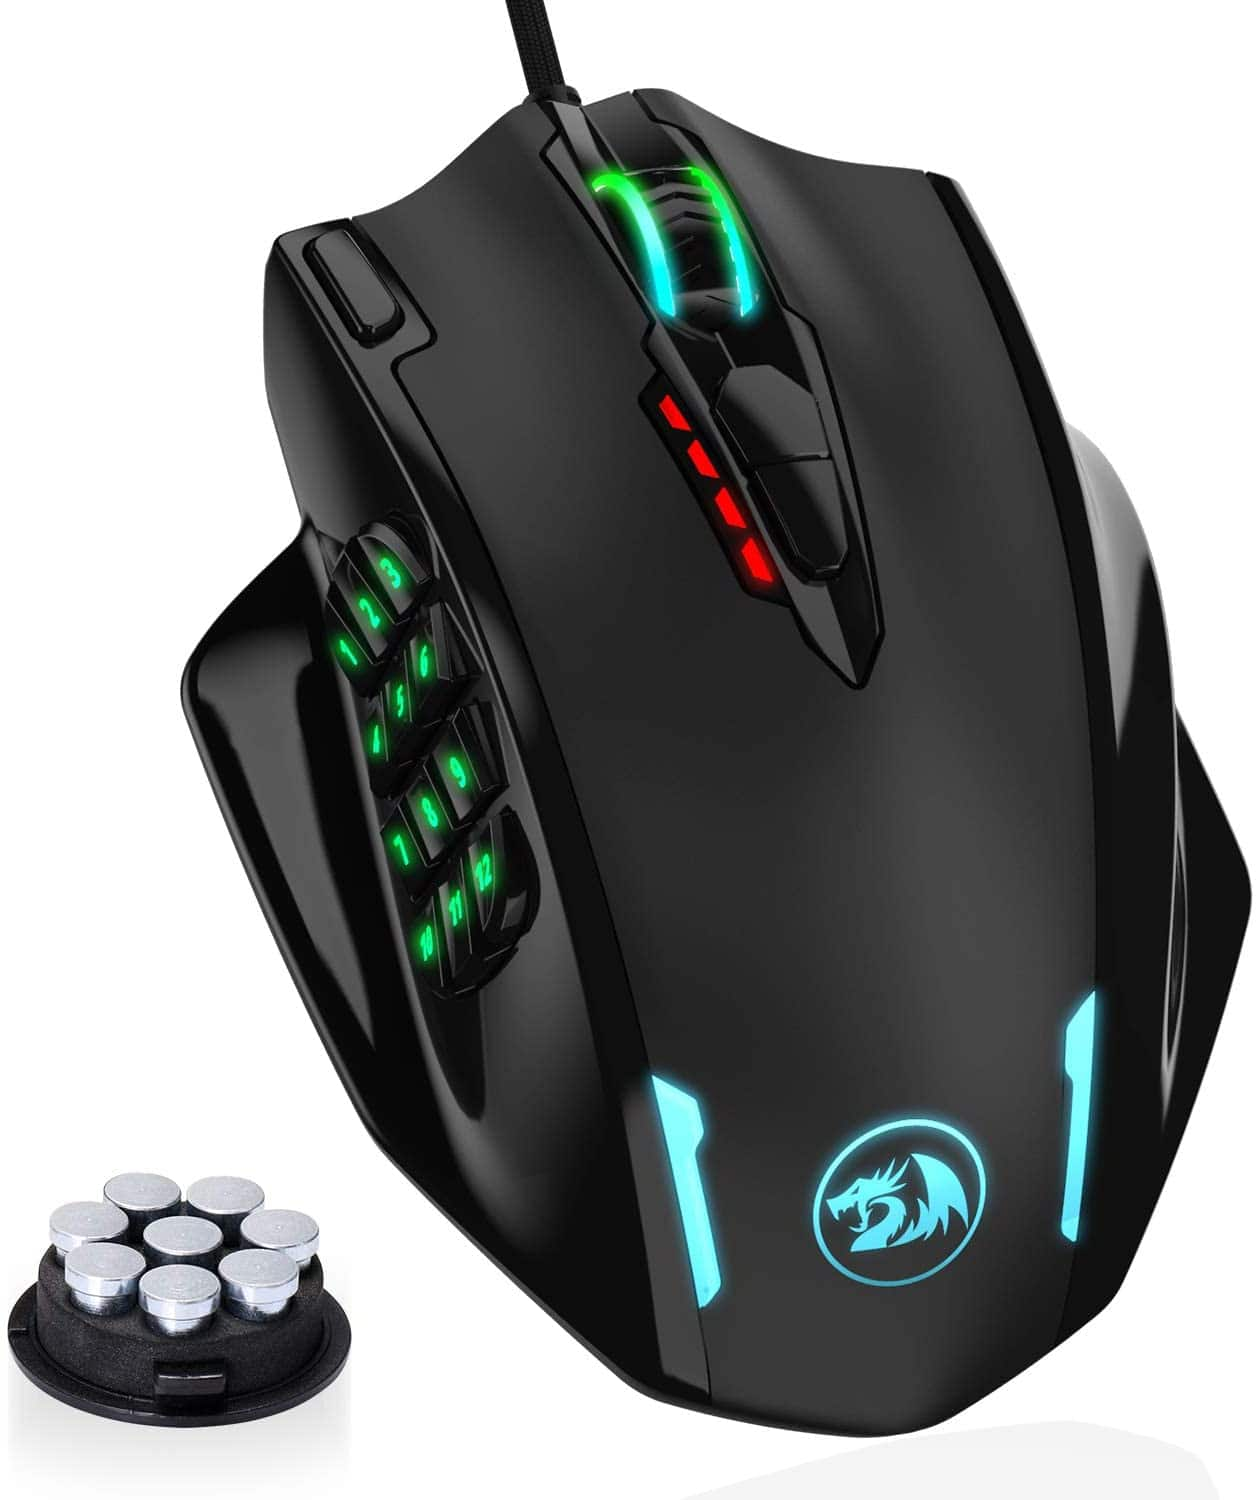 Redragon M908 Impact RGB LED MMO Mouse with Side Buttons $26.31